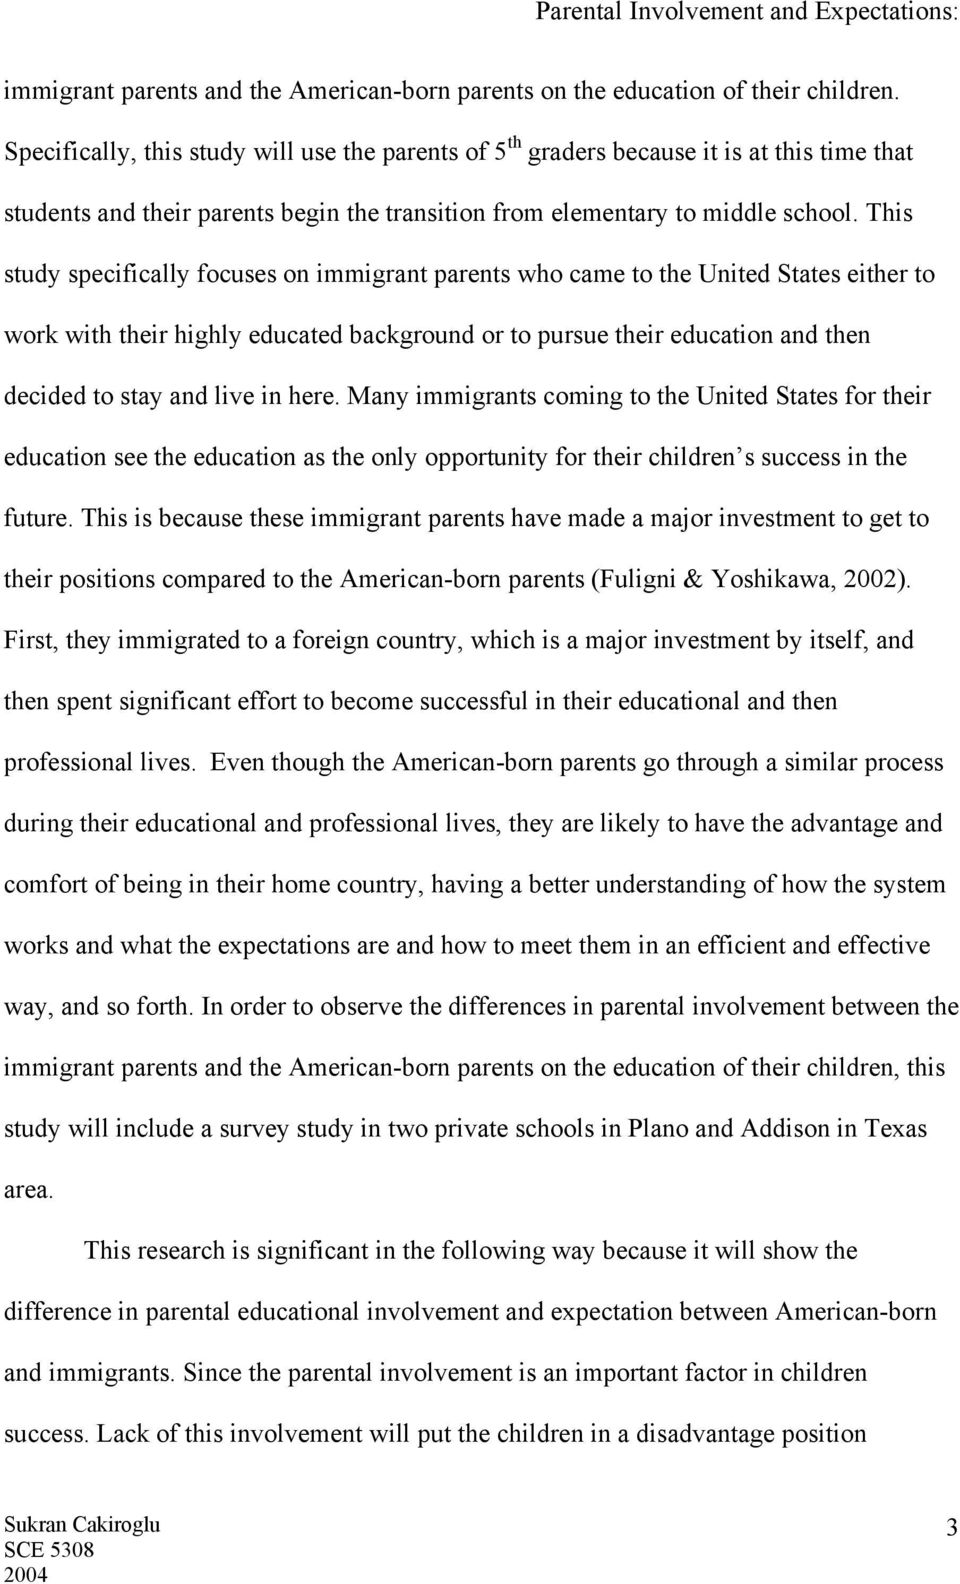 This study specifically focuses on immigrant parents who came to the United States either to work with their highly educated background or to pursue their education and then decided to stay and live